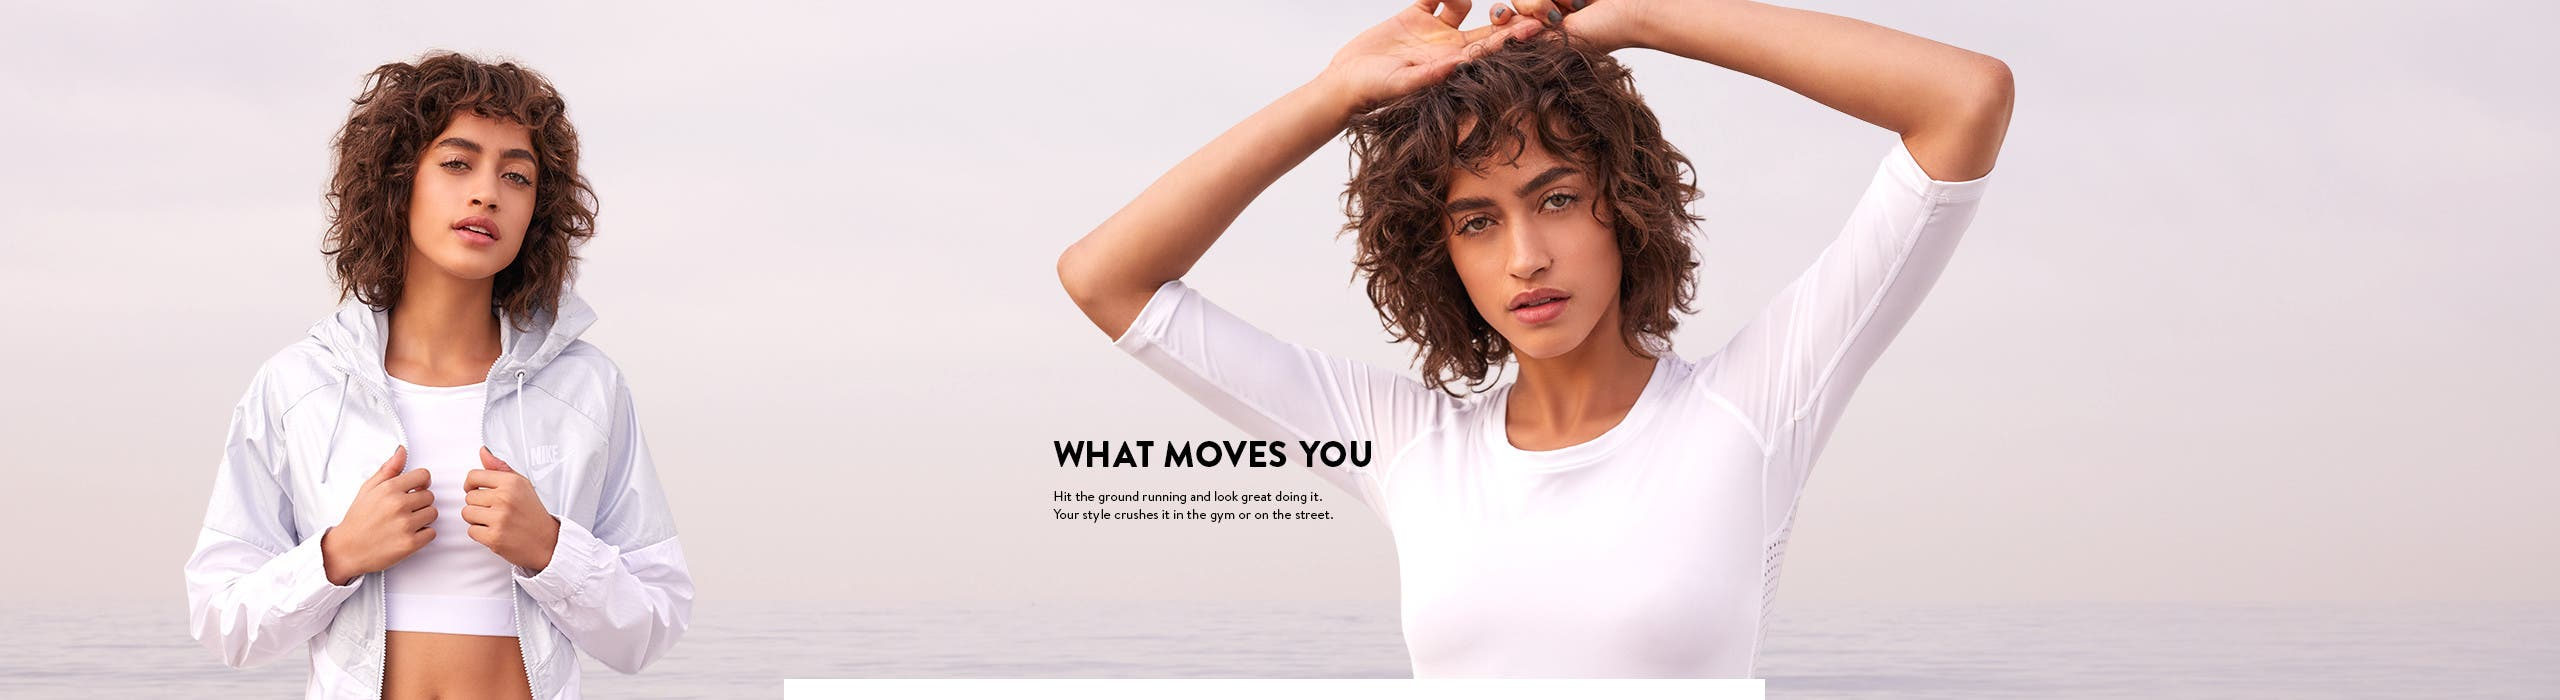 What moves you: activewear for women.